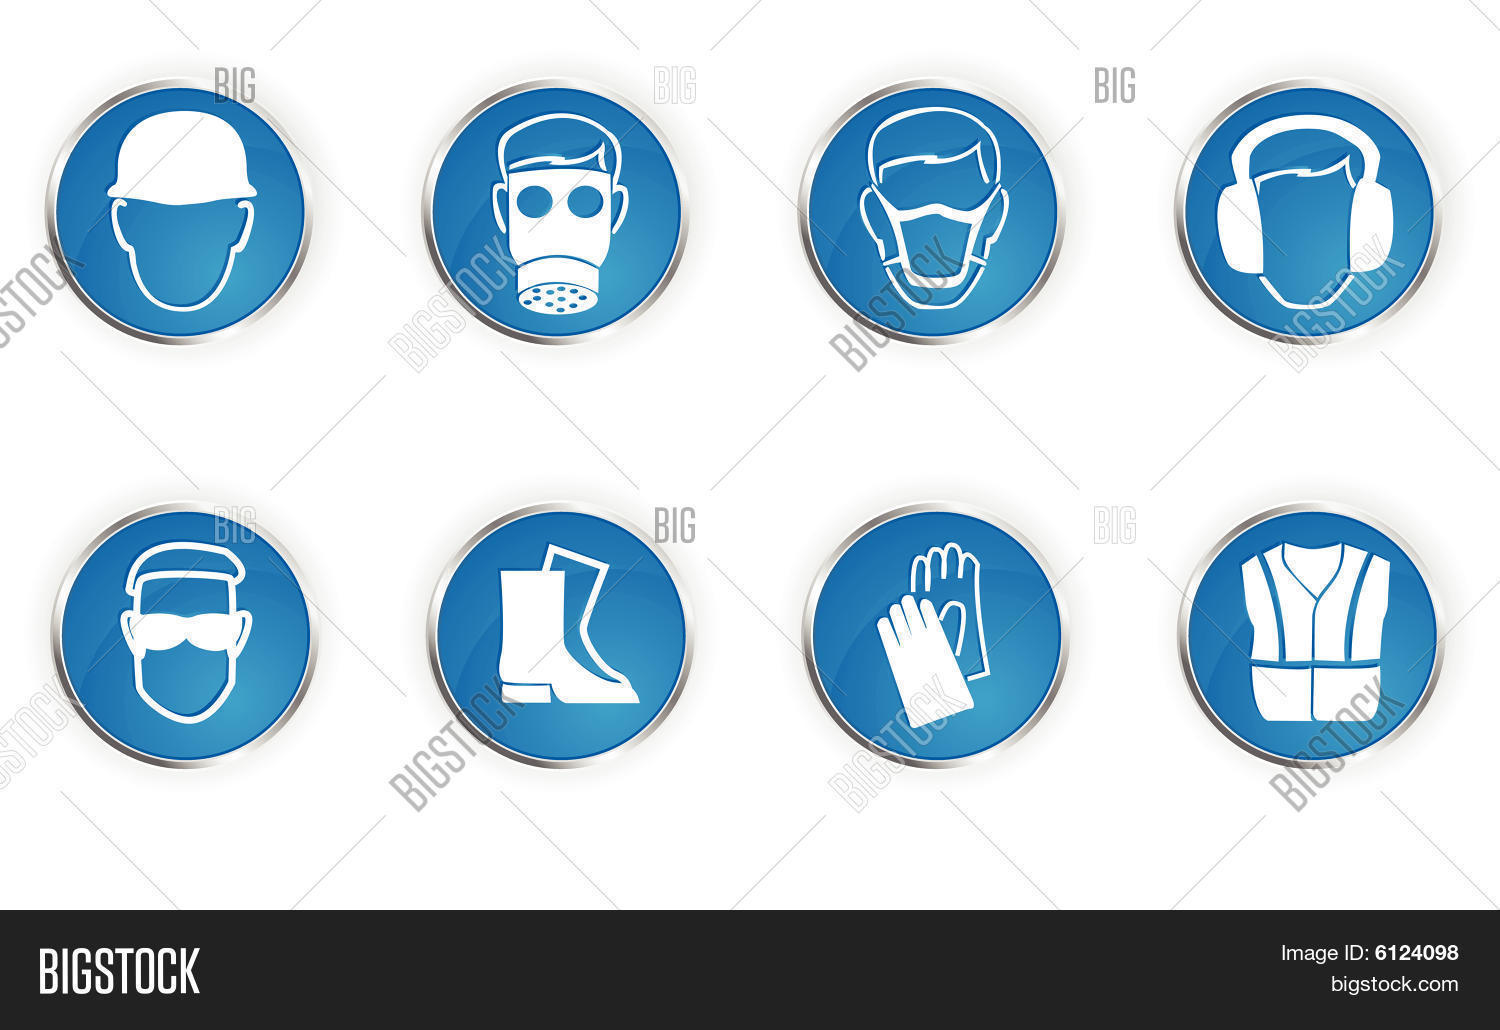 Hazard Symbols Vector Photo Free Trial Bigstock